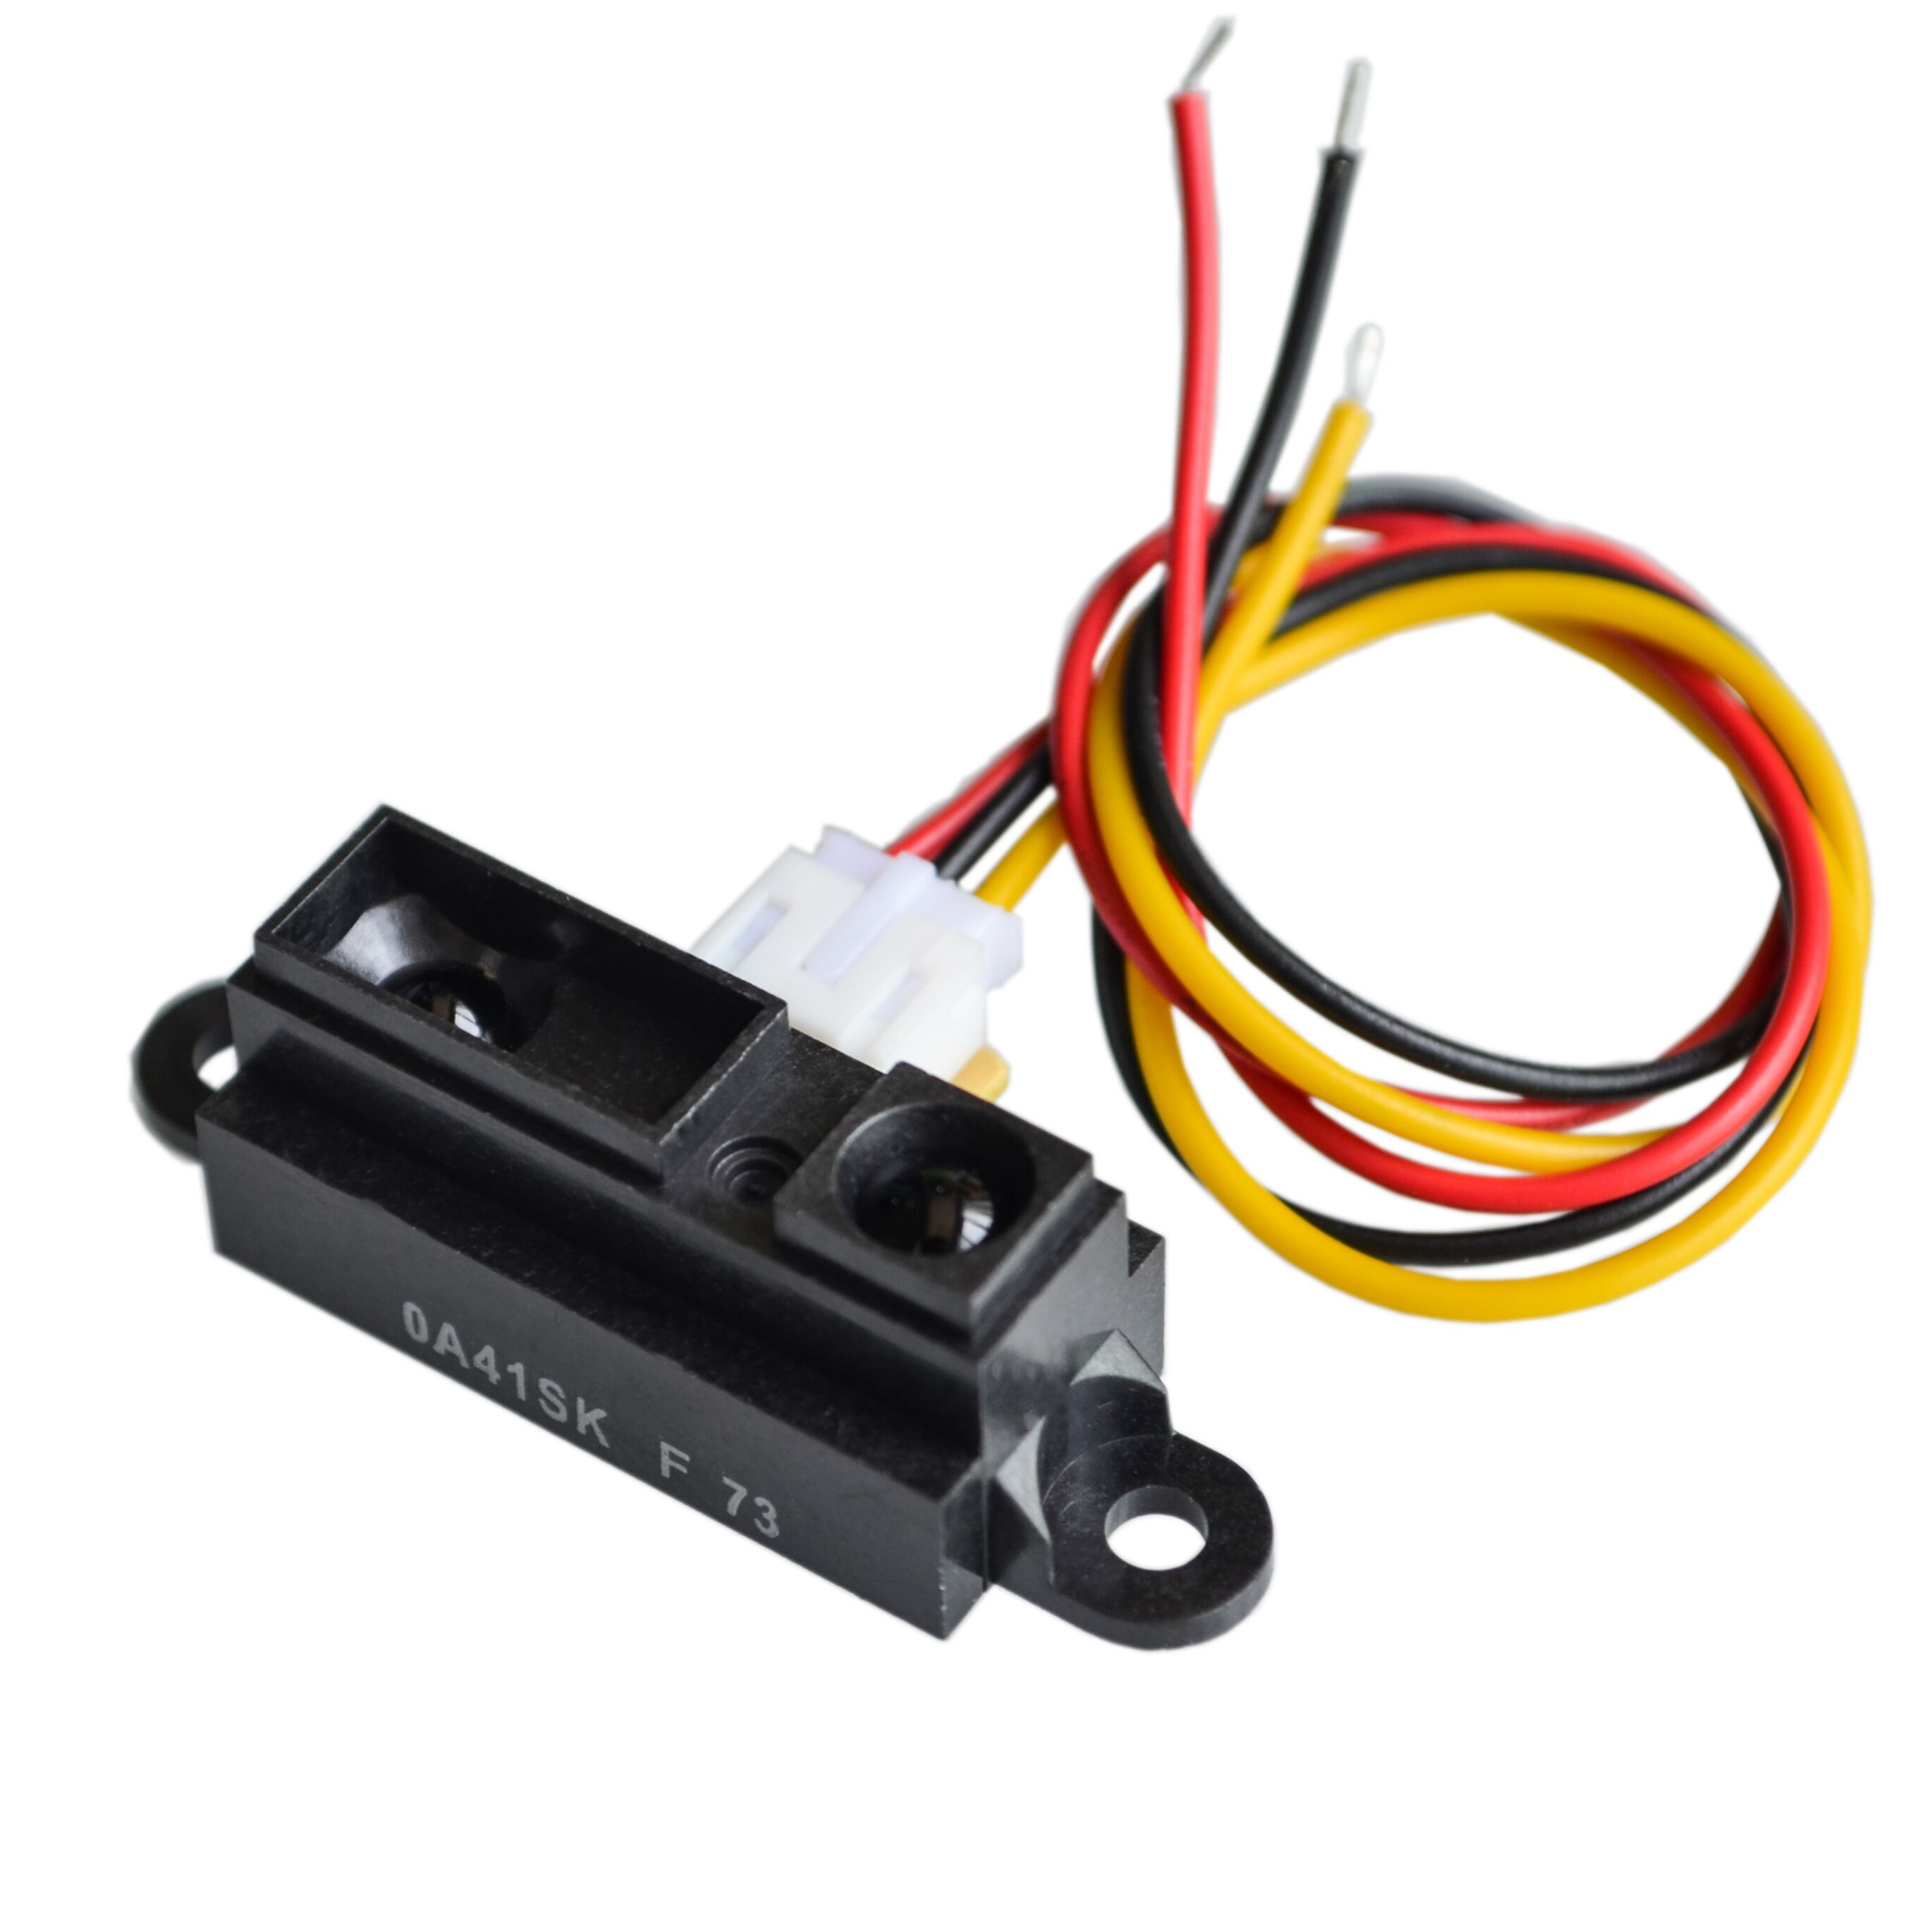 SHARP IR Distance Measuring Sensor Unit 4 To 30 CM With Cable